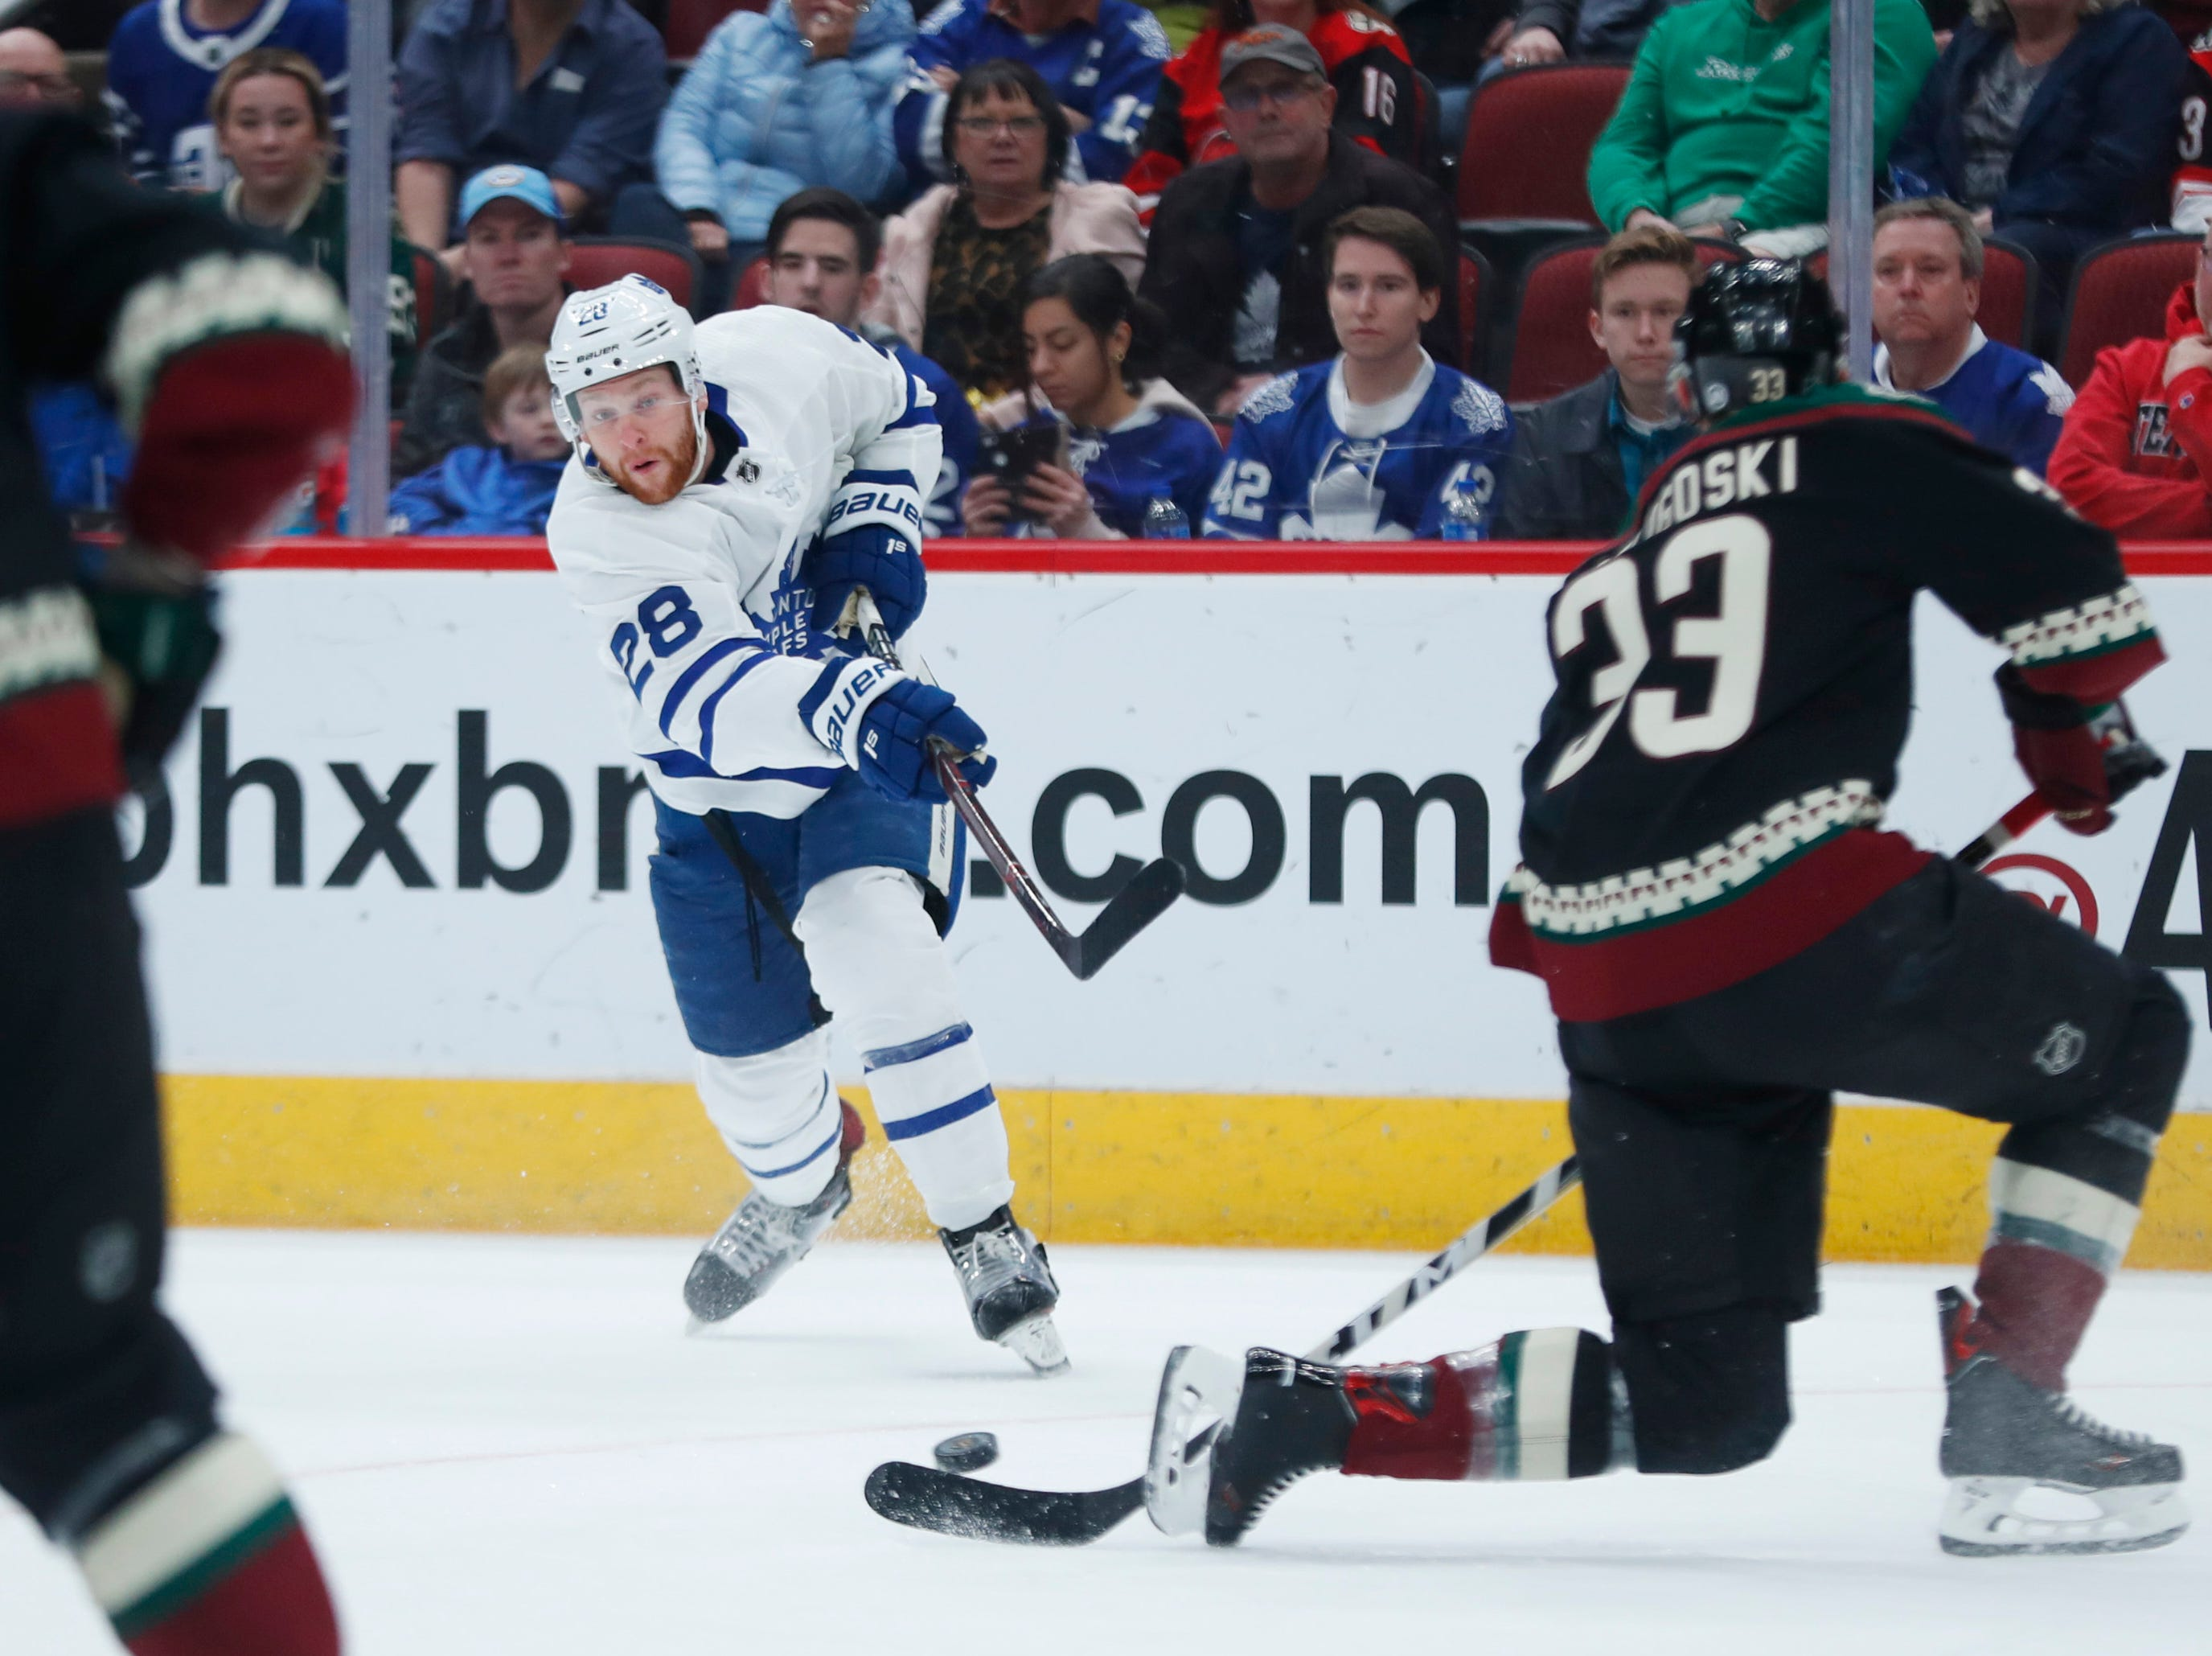 Maple Leafs' Connor Brown (28) shoots against Coyotes' Alex Goligoski (33) during the first period at Gila River Arena in Glendale, Ariz. on February 16, 2019.